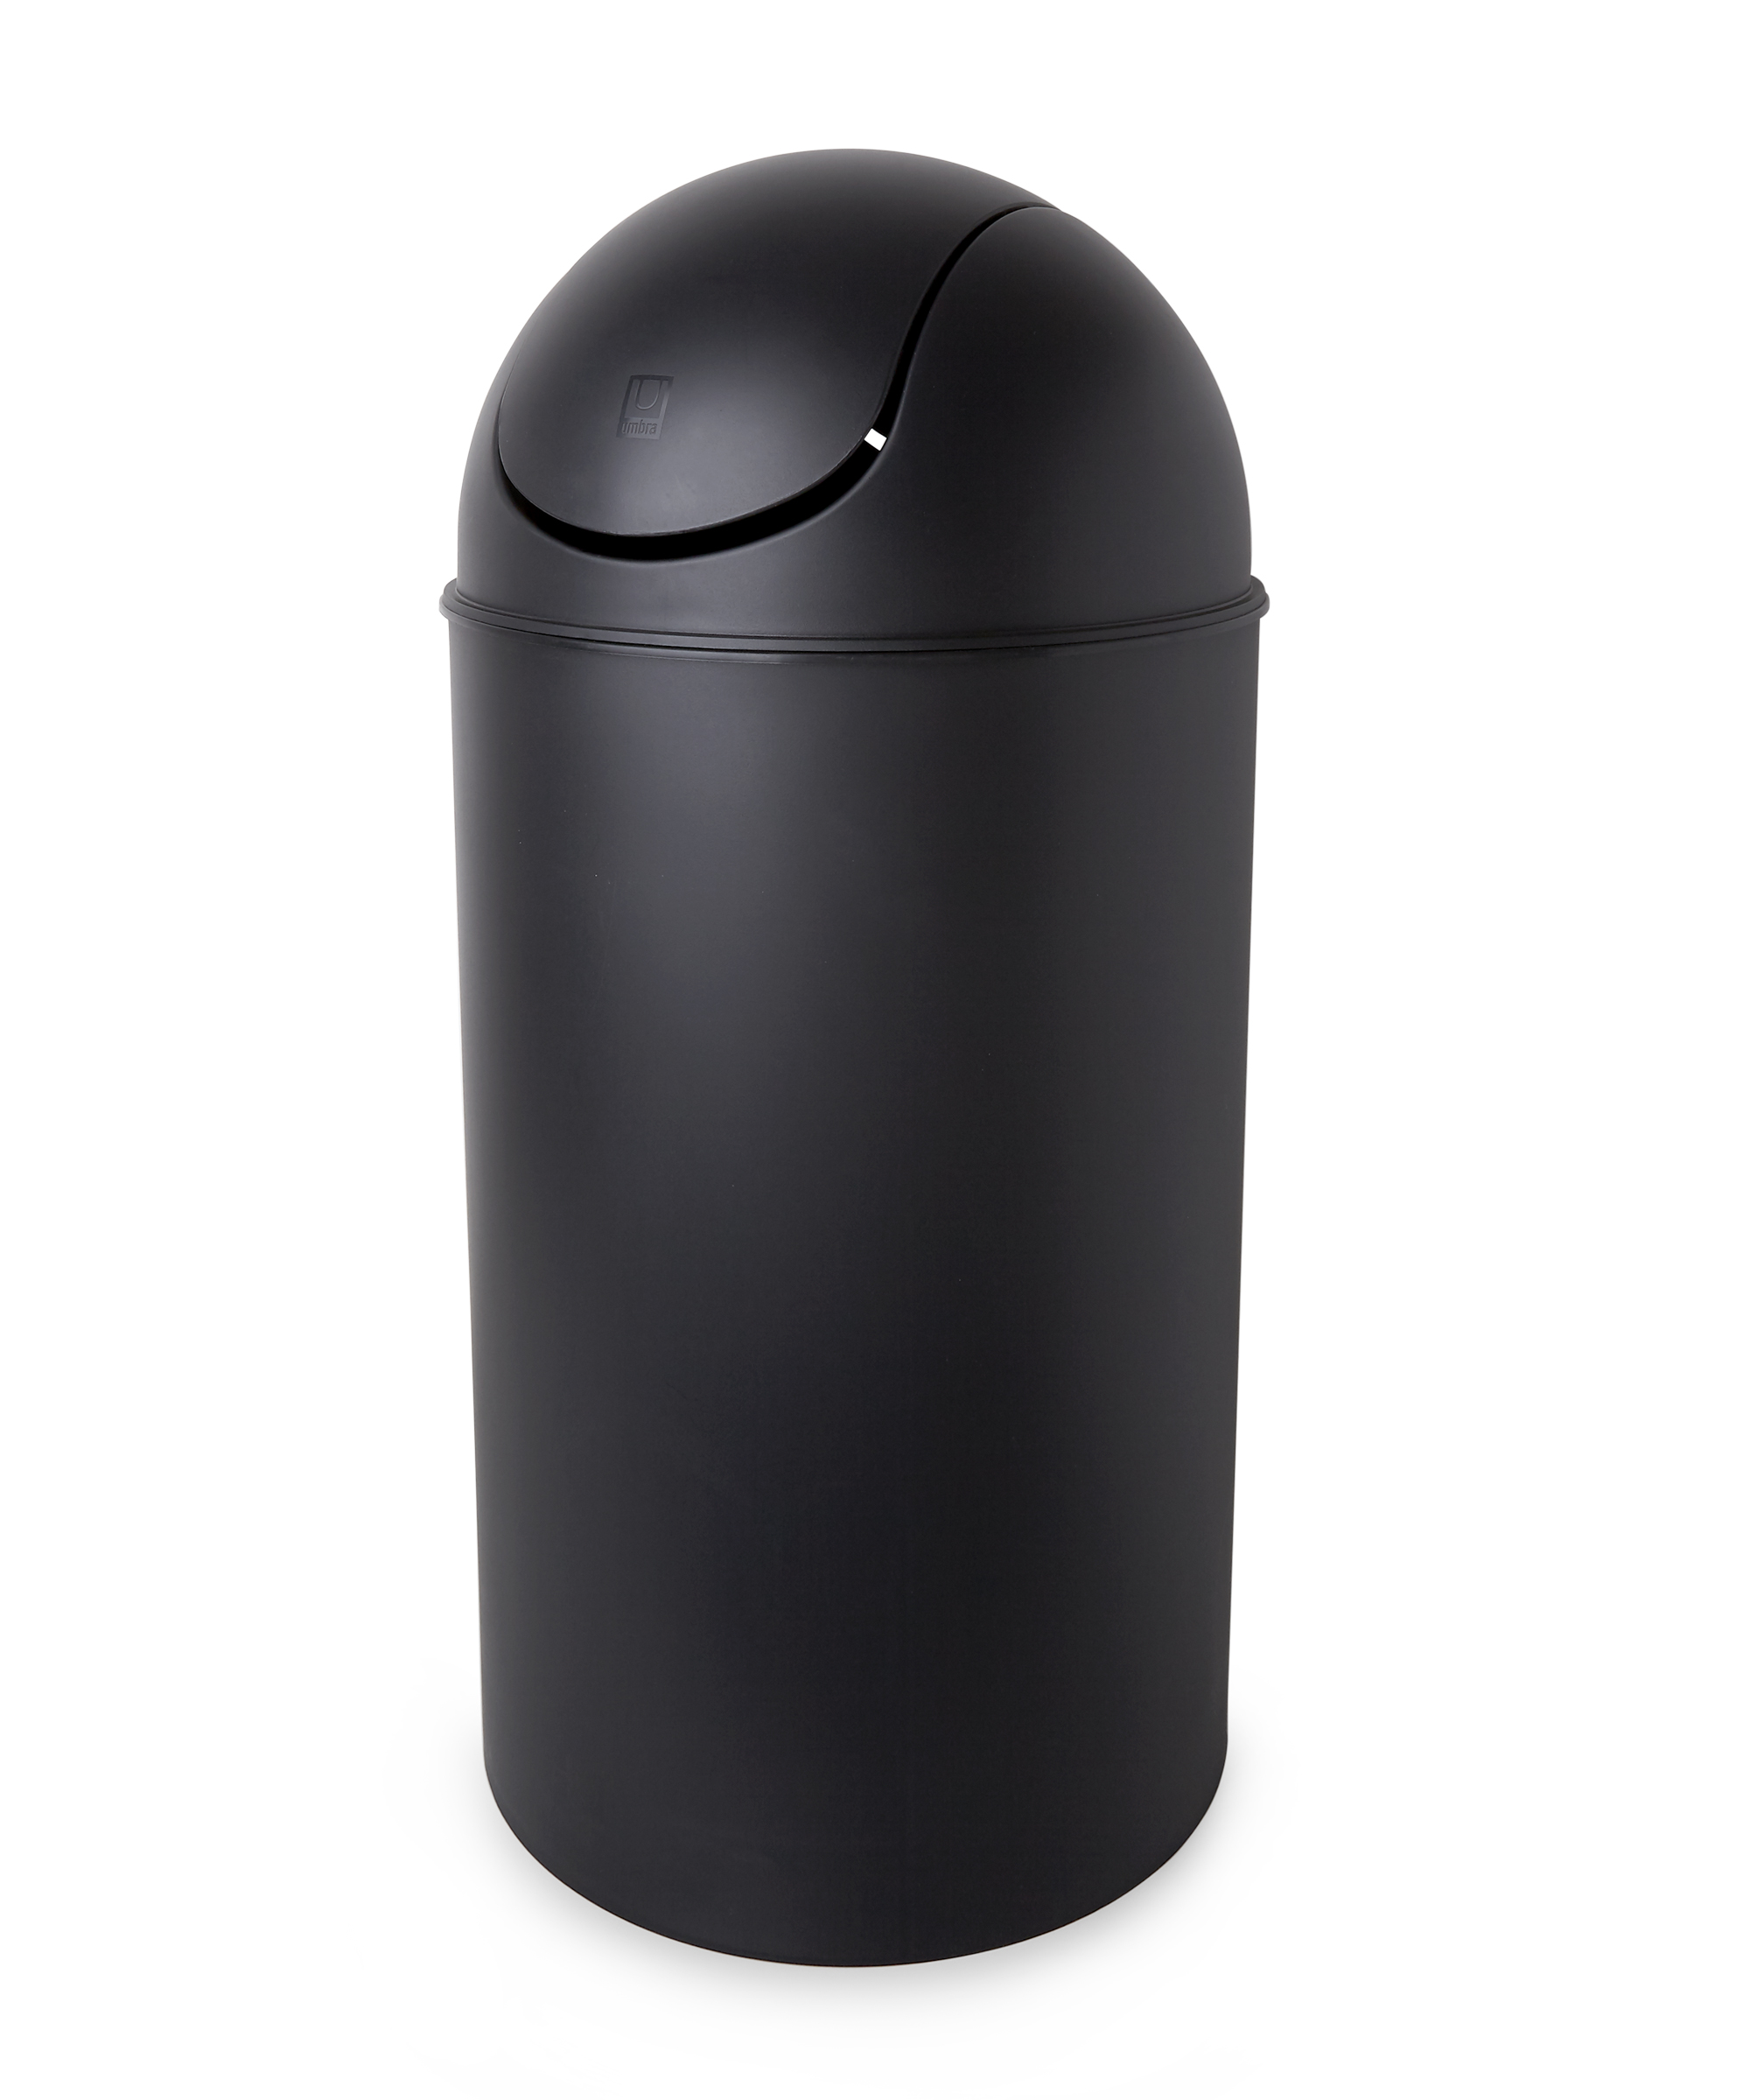 Large Capacity 10 Gallon Kitchen Trash Can with Lid Indoor ...